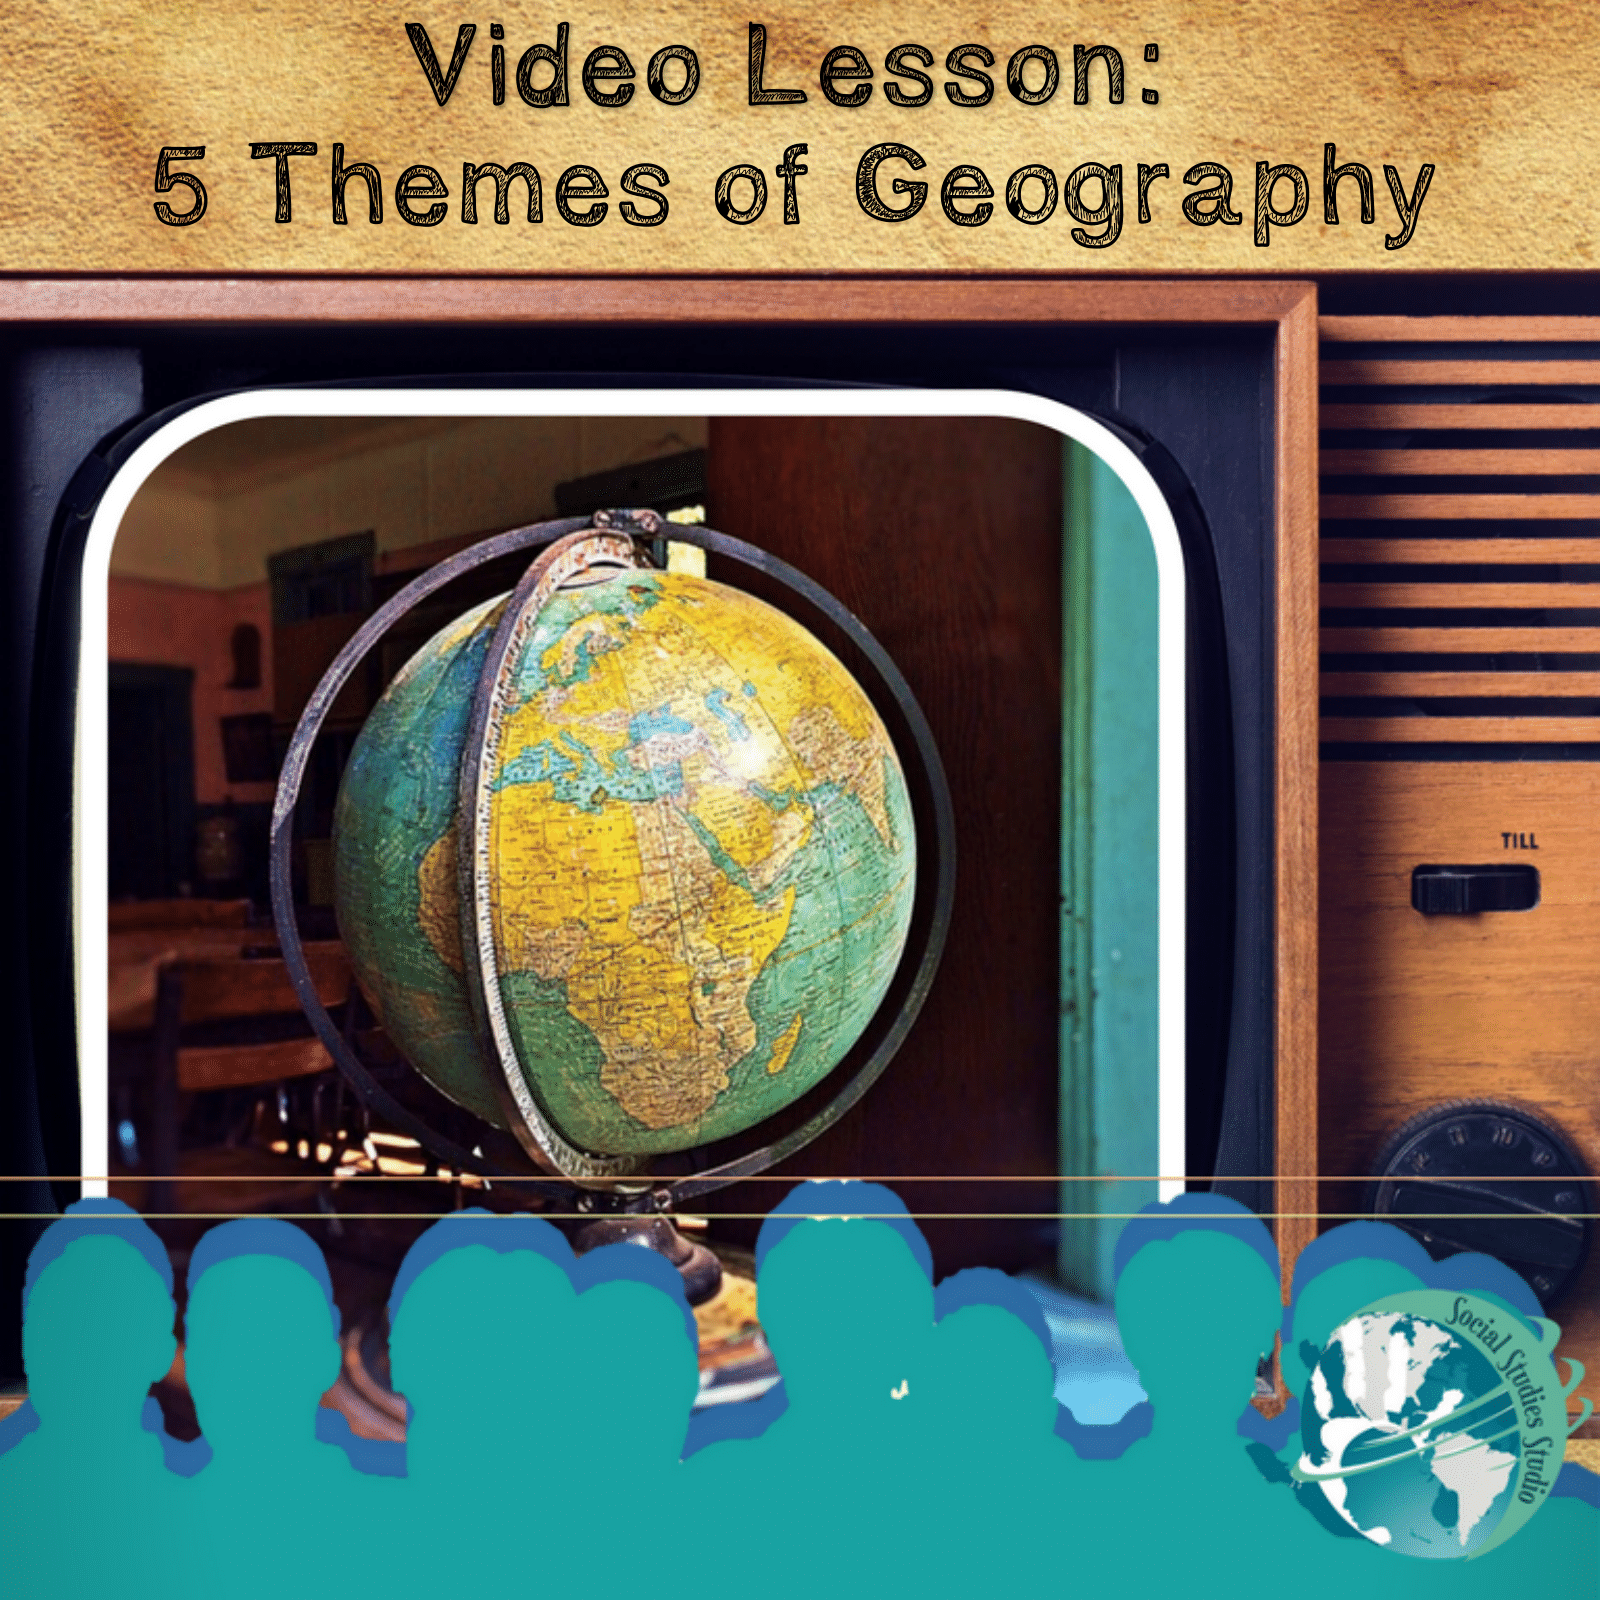 Perfect grab and go lesson for teachers! Lesson features video link, activity worksheets, note taking strategies, discussion prompts, 4 depths of knowledge questions, and project ideas all about the 5 themes of georgraphy.